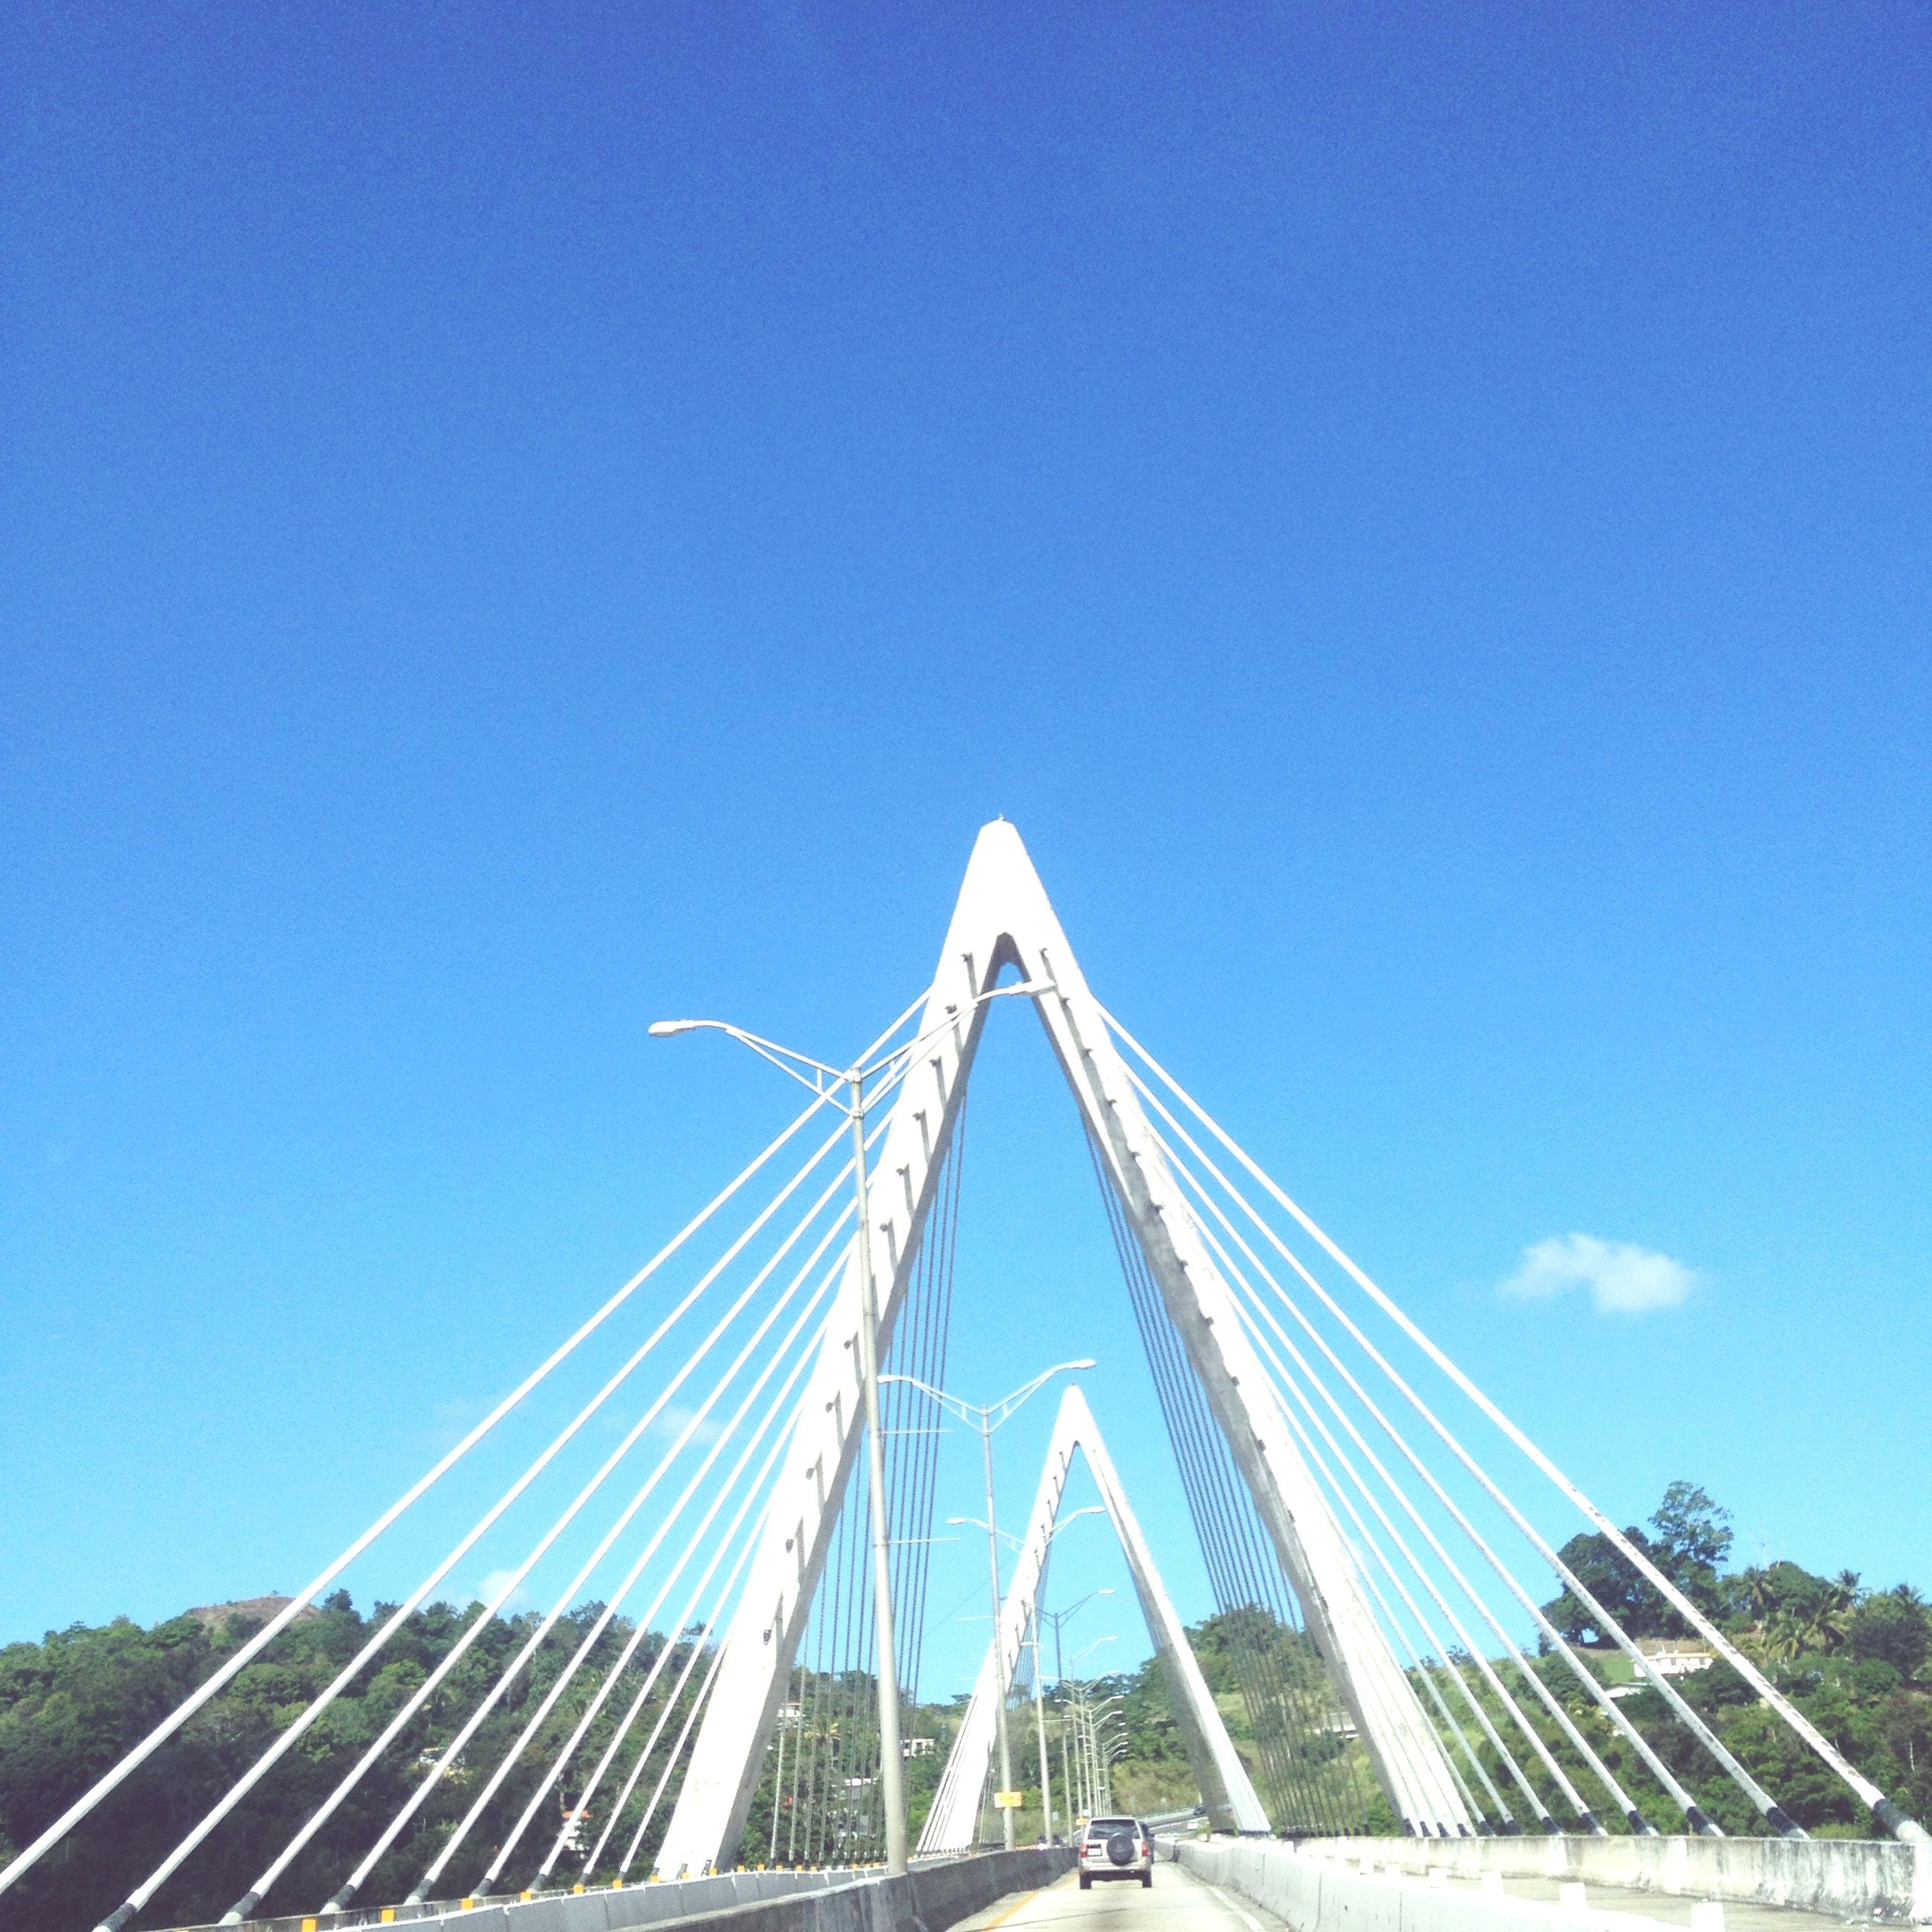 blue, clear sky, low angle view, transportation, copy space, built structure, nautical vessel, connection, day, mode of transport, outdoors, architecture, sky, engineering, suspension bridge, sunlight, part of, no people, travel, rope